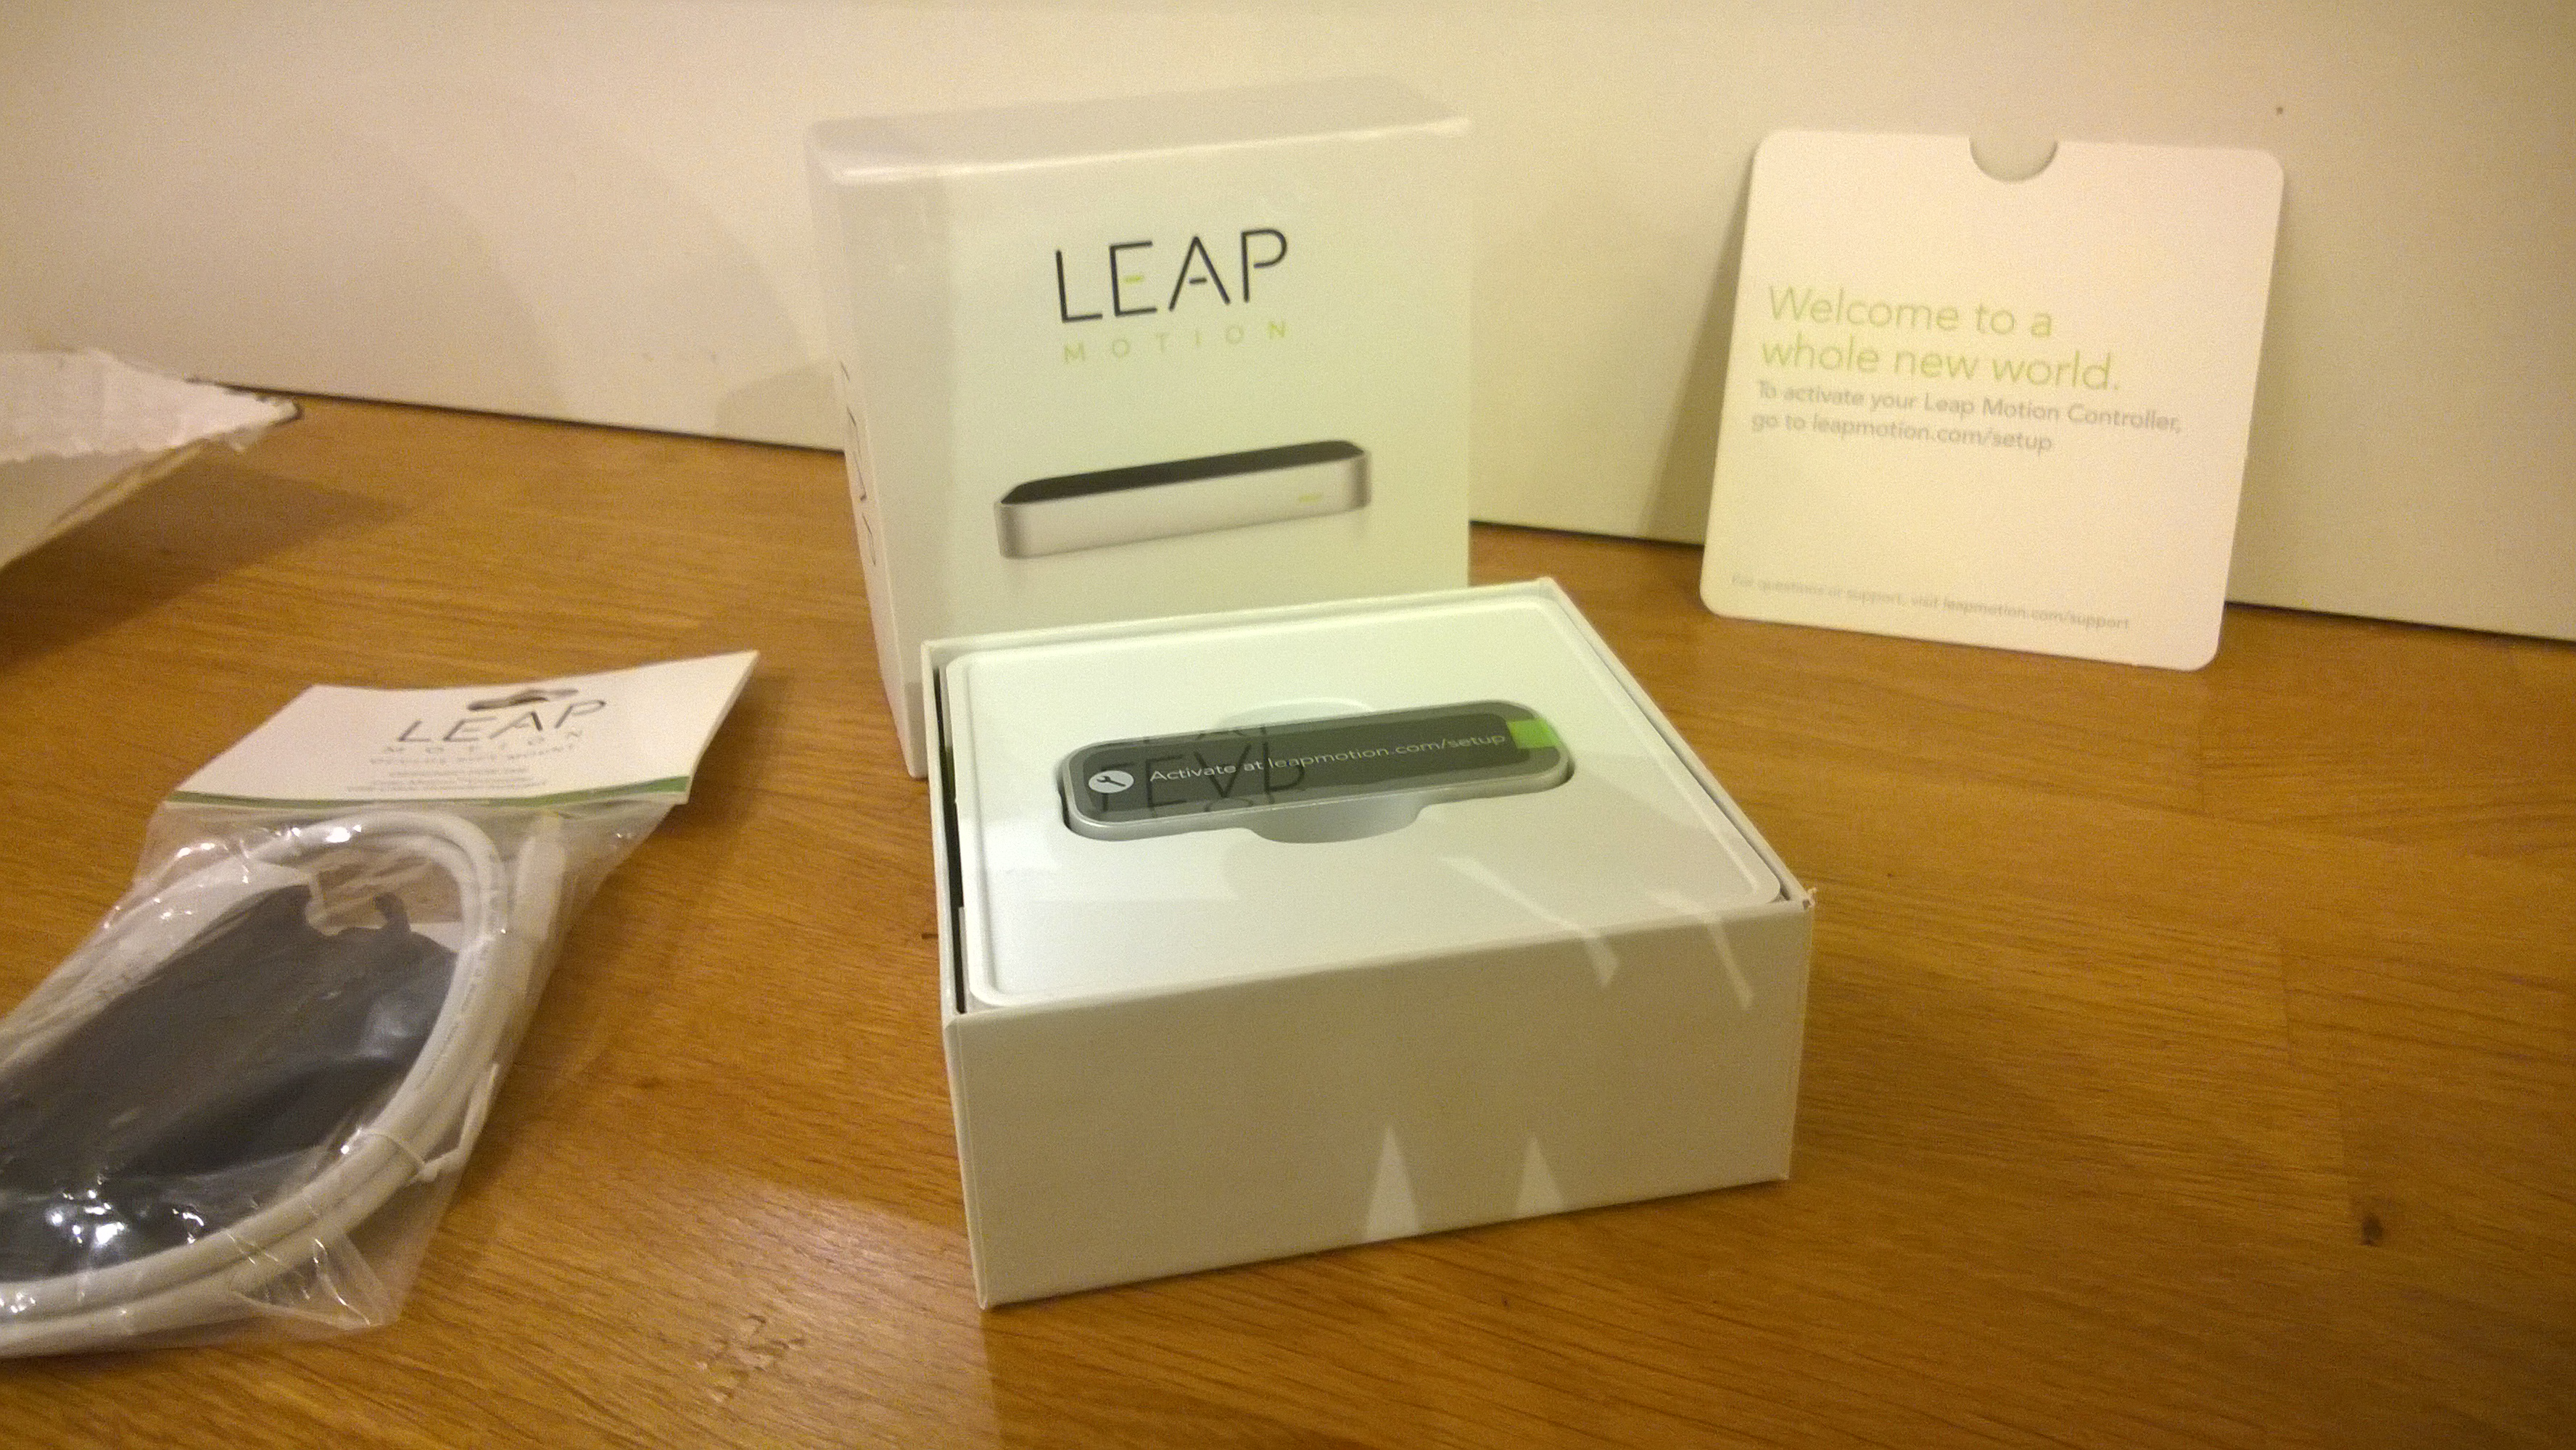 The Leap Motion controller when its arrived at the lab